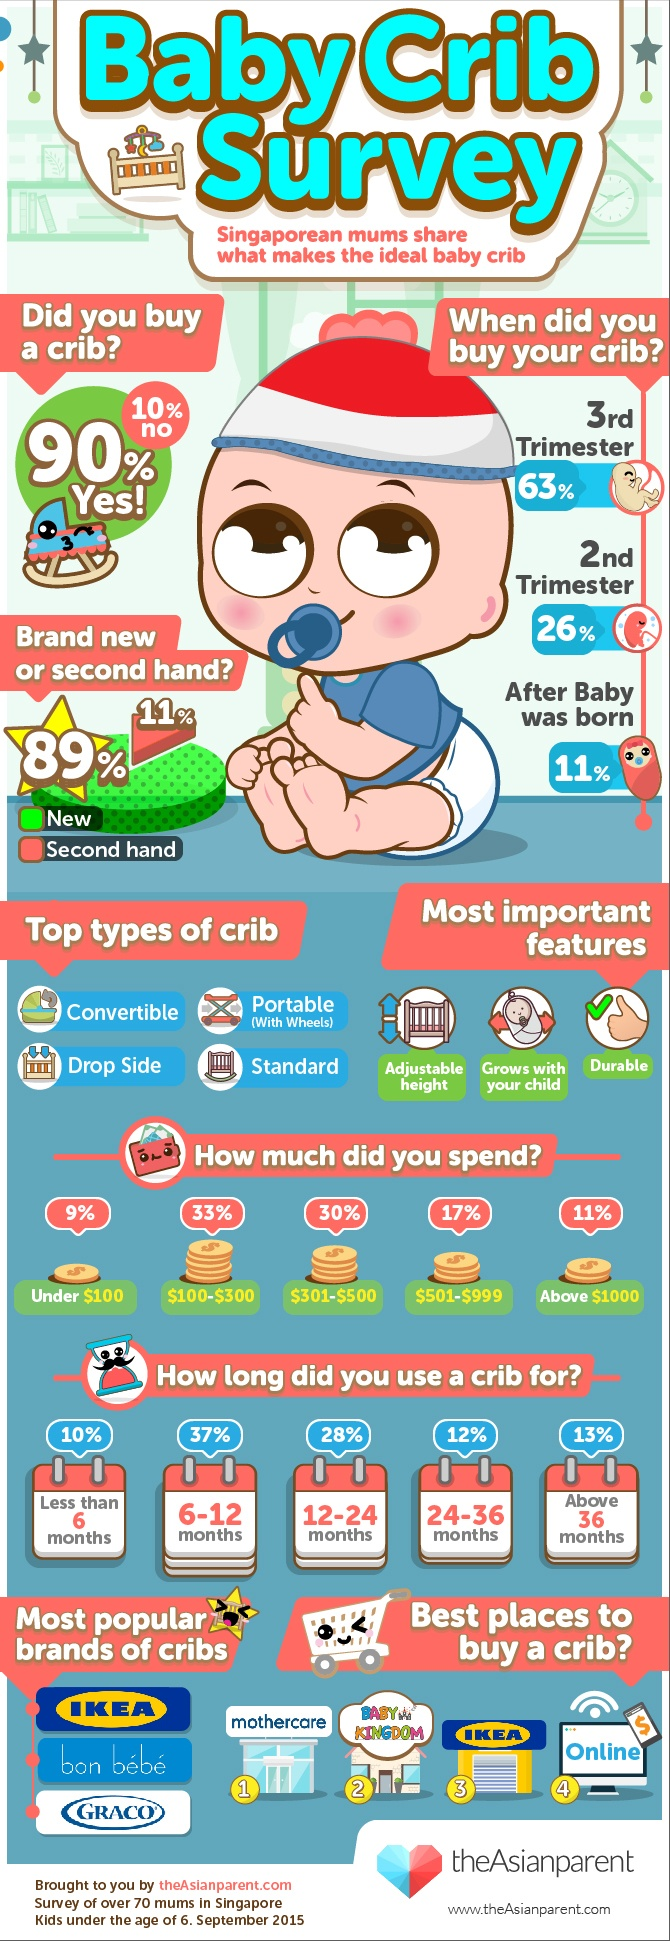 BabyCribSurvey 16 9 15 alternative1 How to choose the perfect baby crib in Singapore (Infographic)